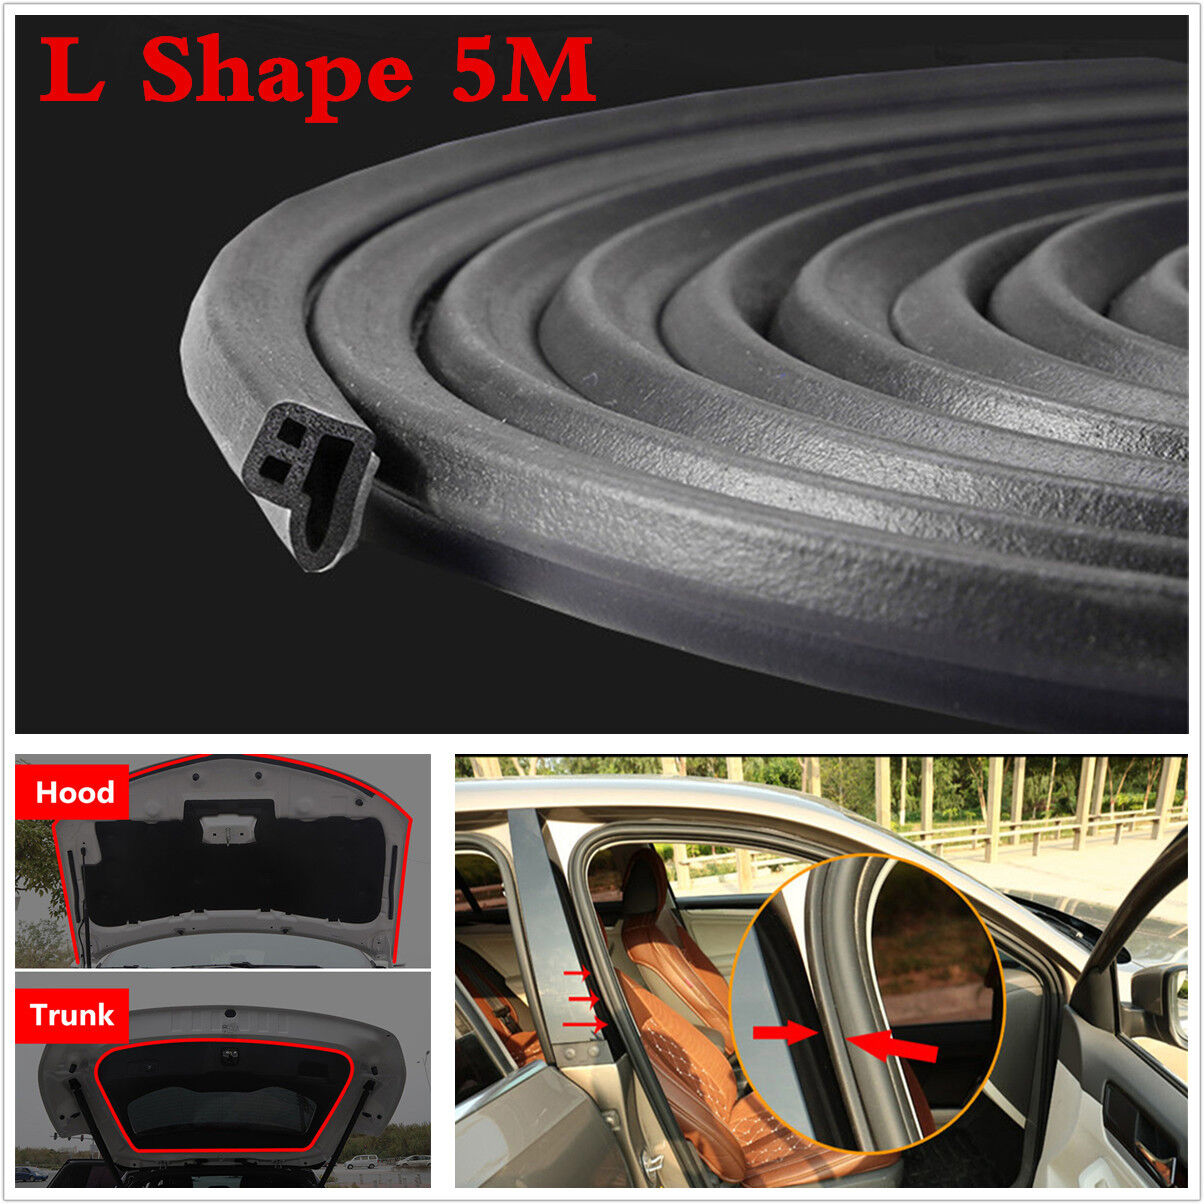 Car Parts - 5M L Shape Car Door Hood Trunk Trim Edge Moulding Rubber Weatherstrip Seal Strip